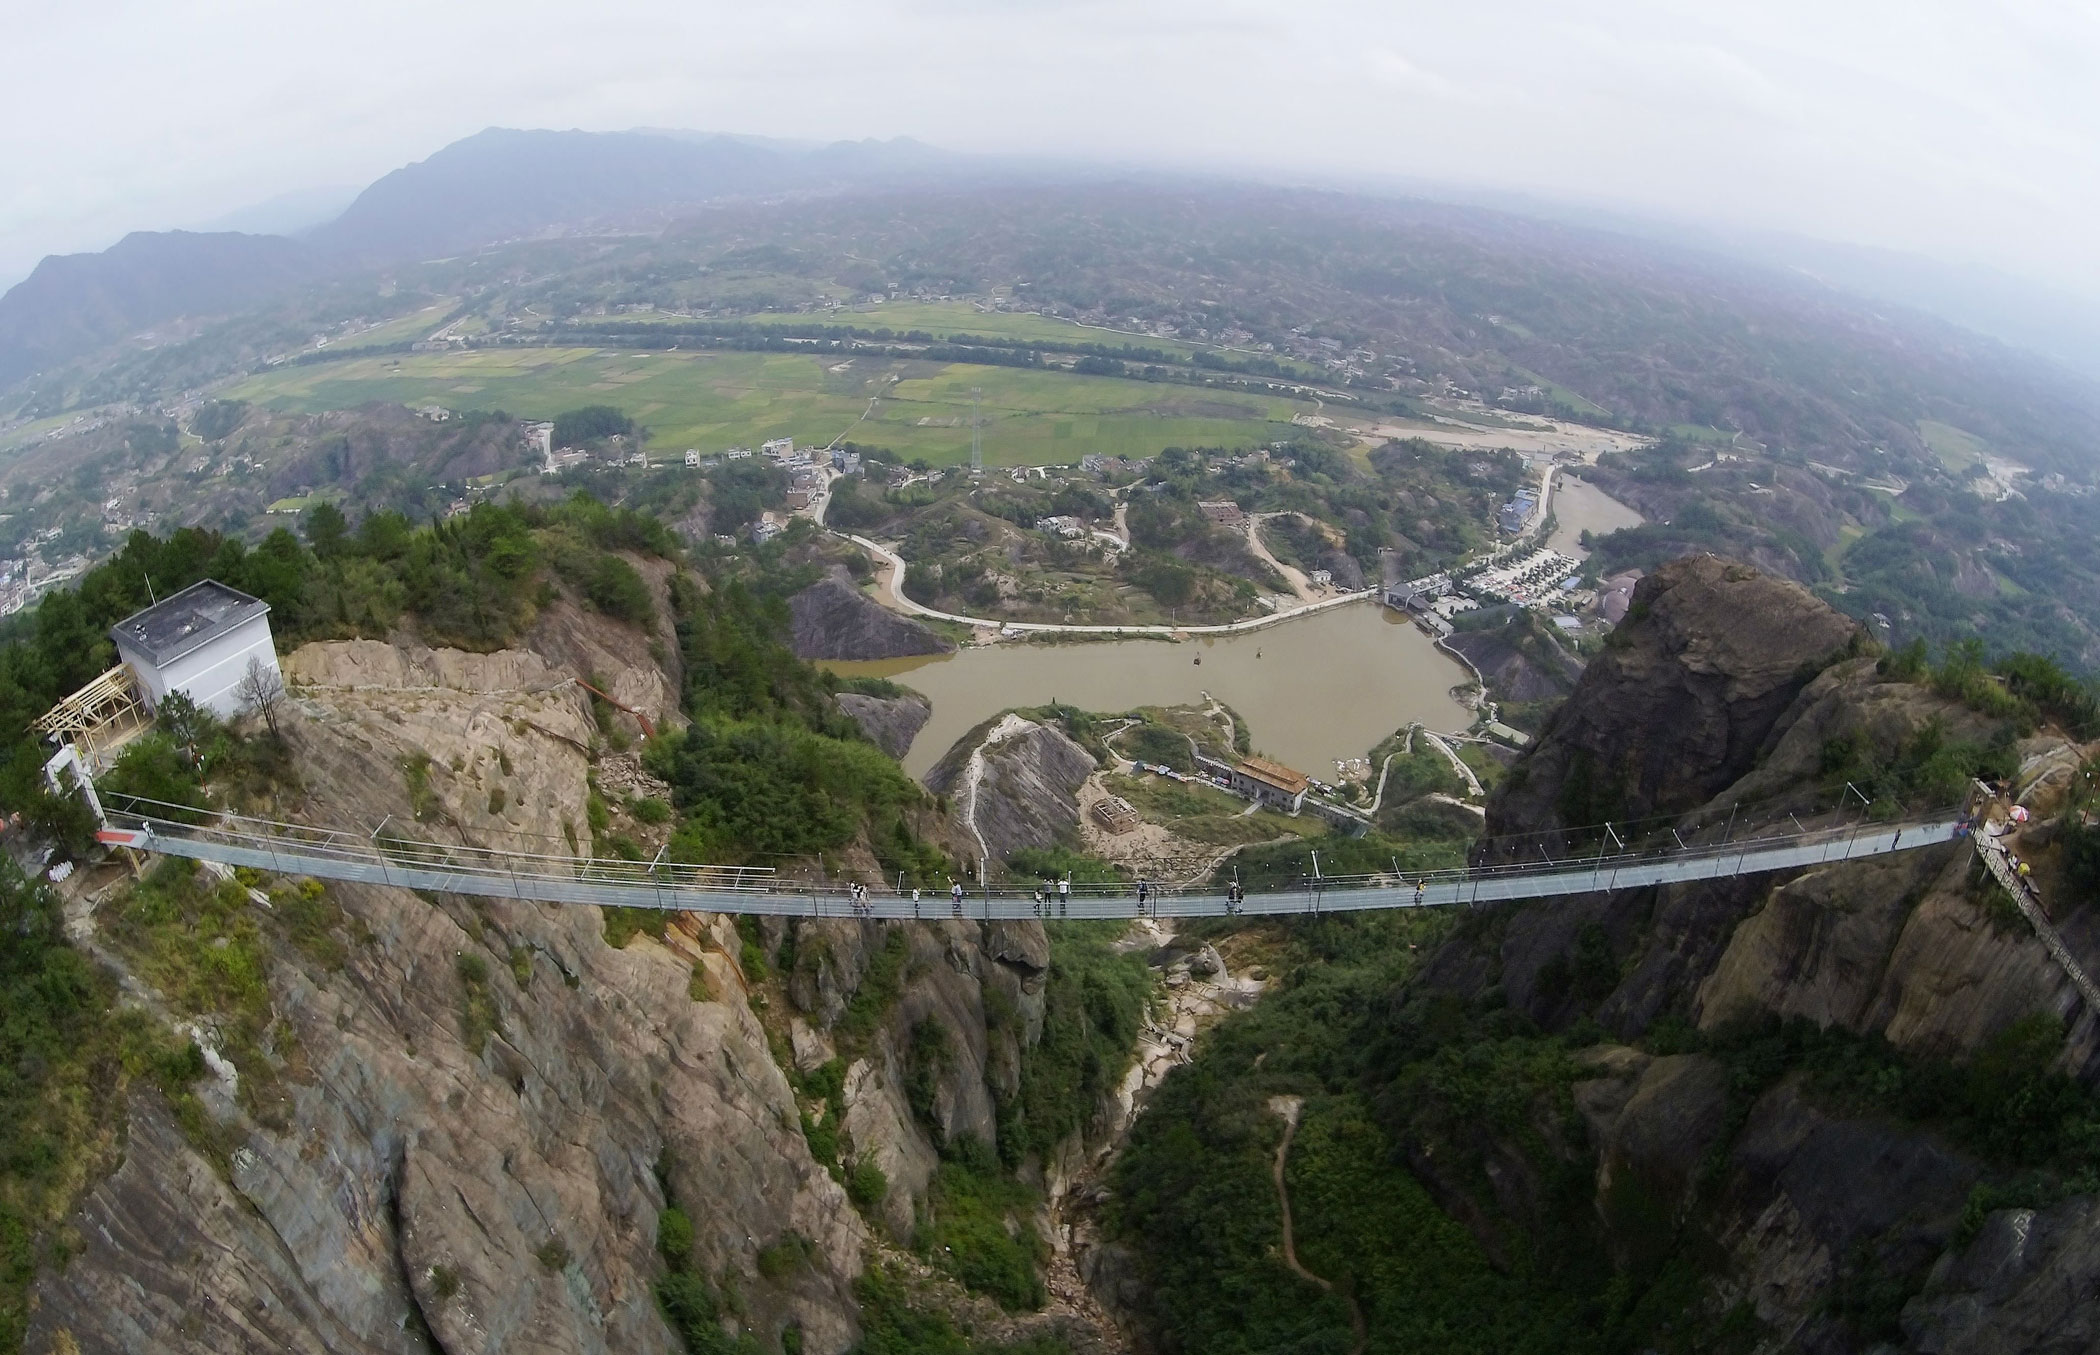 Tourists walk on a 300-meter-long glass suspension bridge at the Shiniuzhai National Geological Park in Pingjiang County, China, on Sept. 24, 2015.